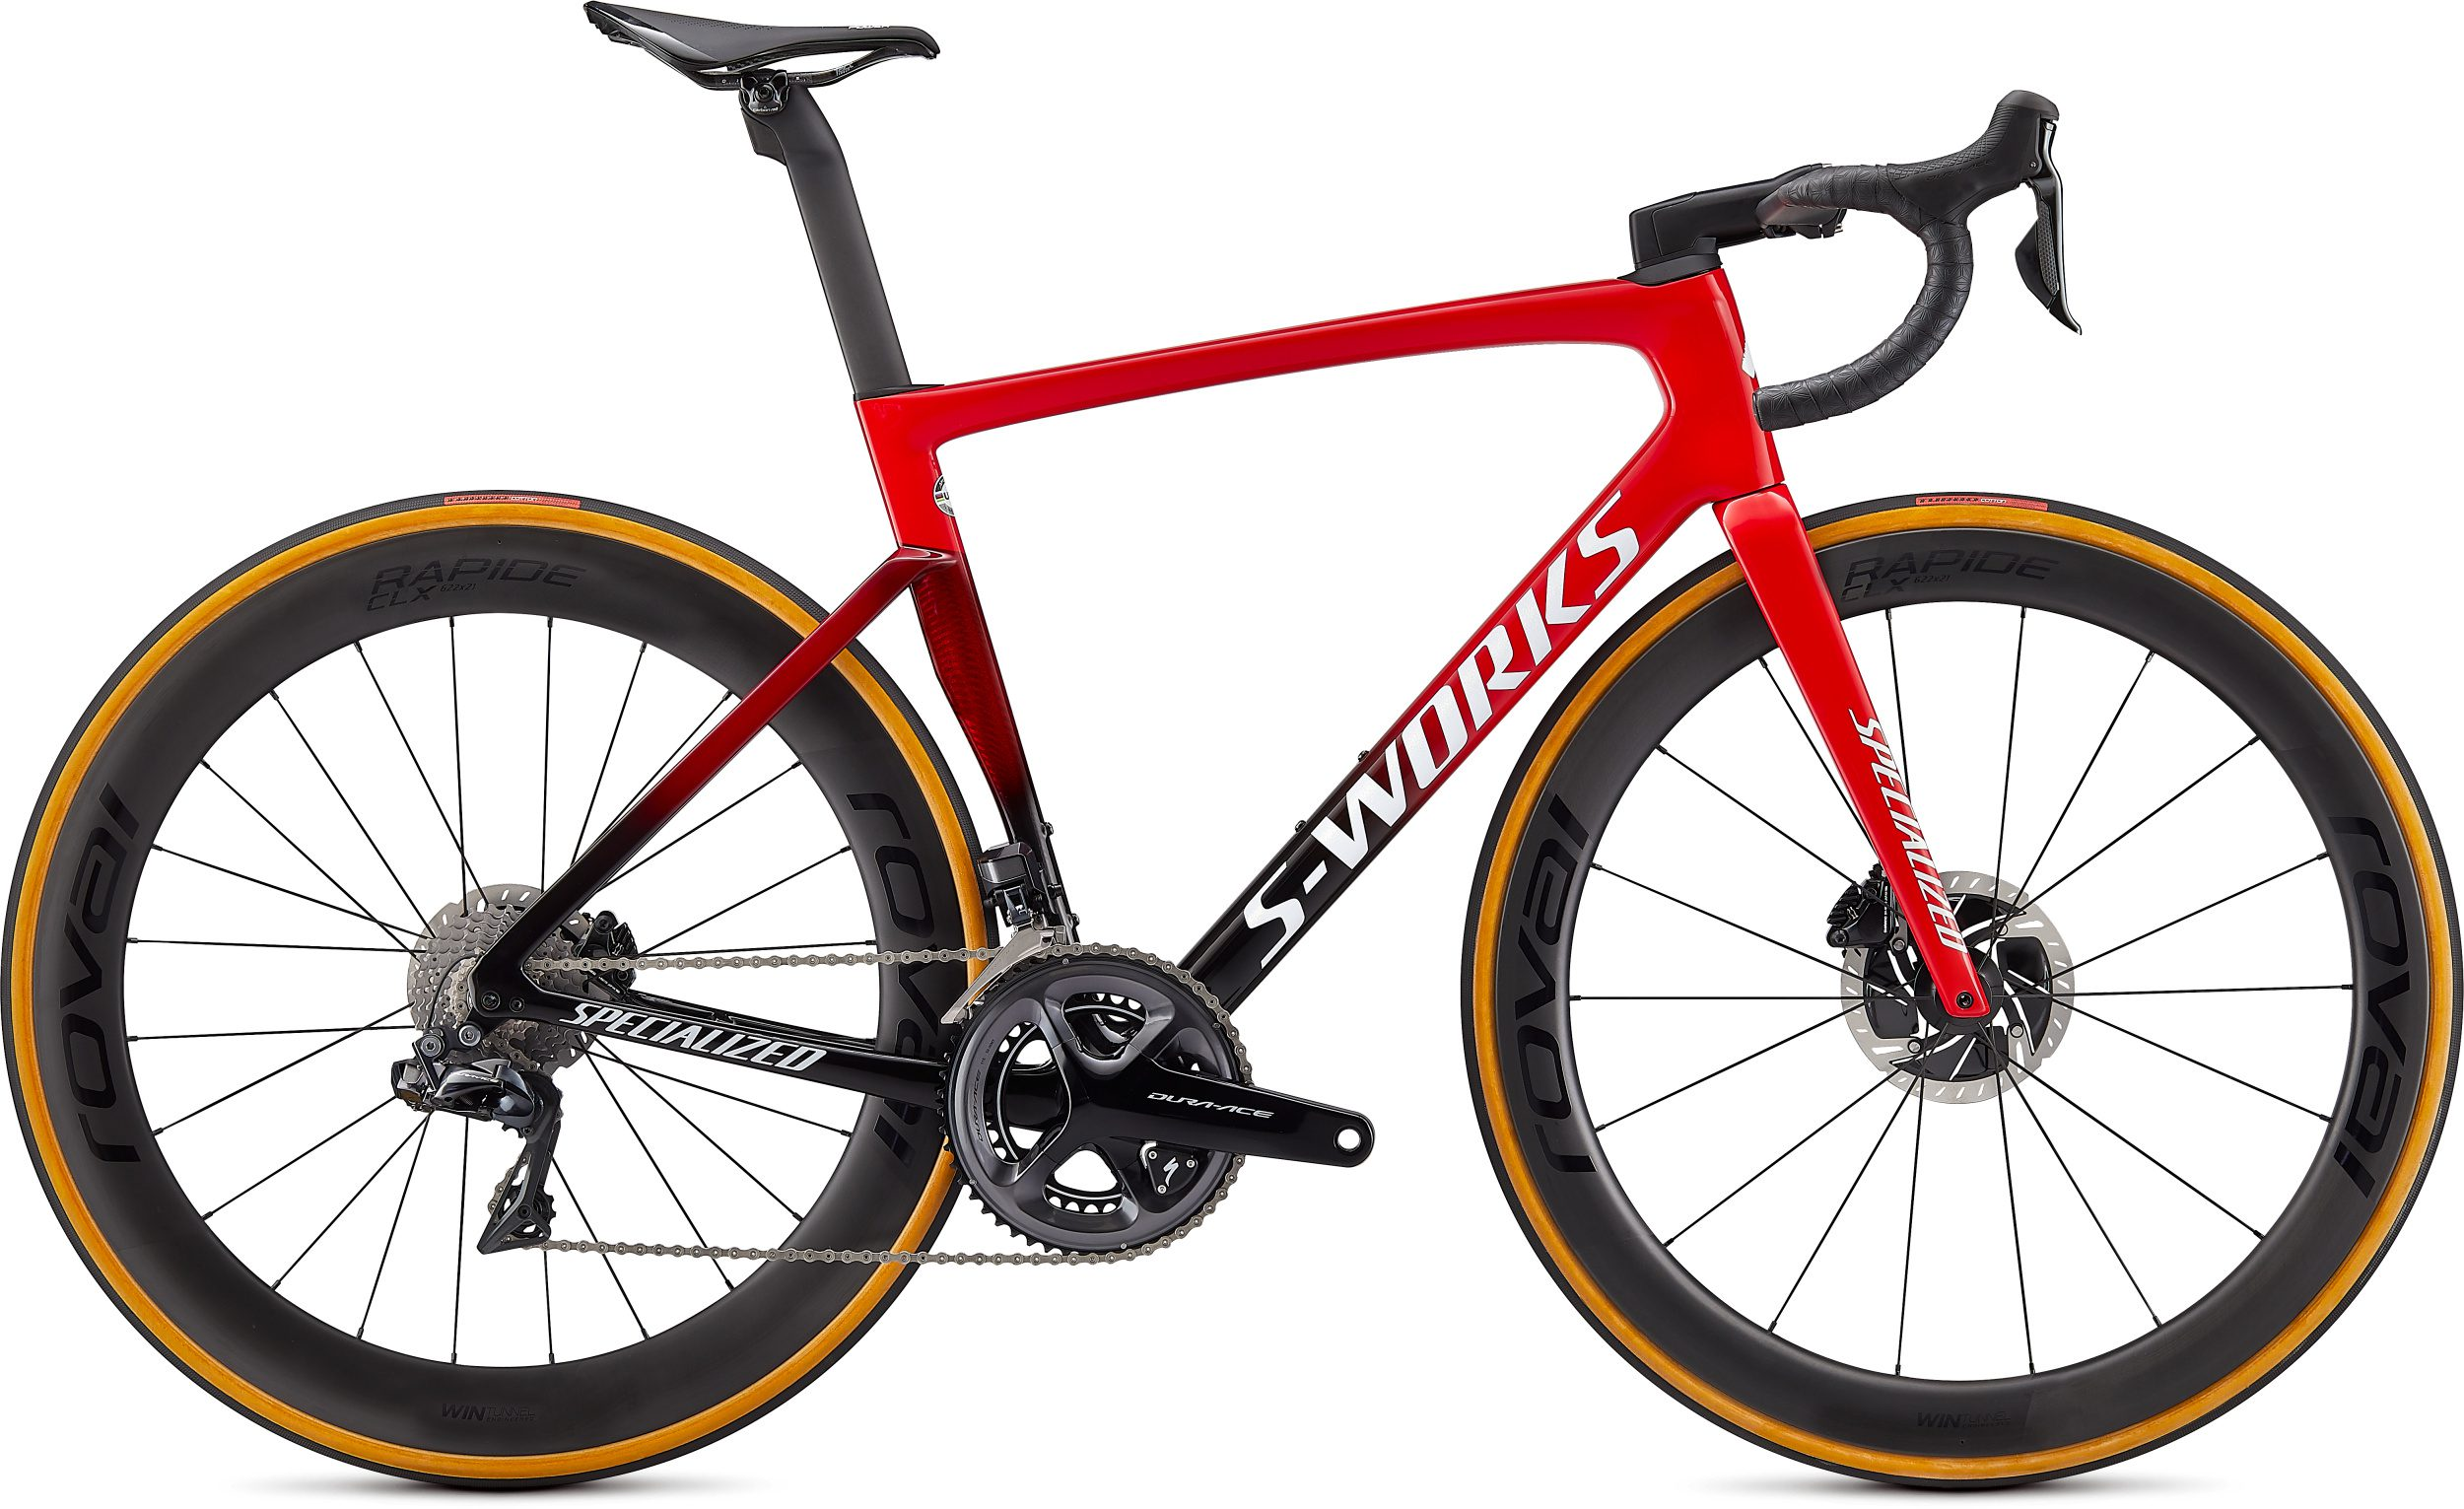 Specialized S-Works Tarmac SL7 - Dura Ace Di2 2021 Frontansicht in der Farbe Flo Red/Red Tint/Tarmac Black/White